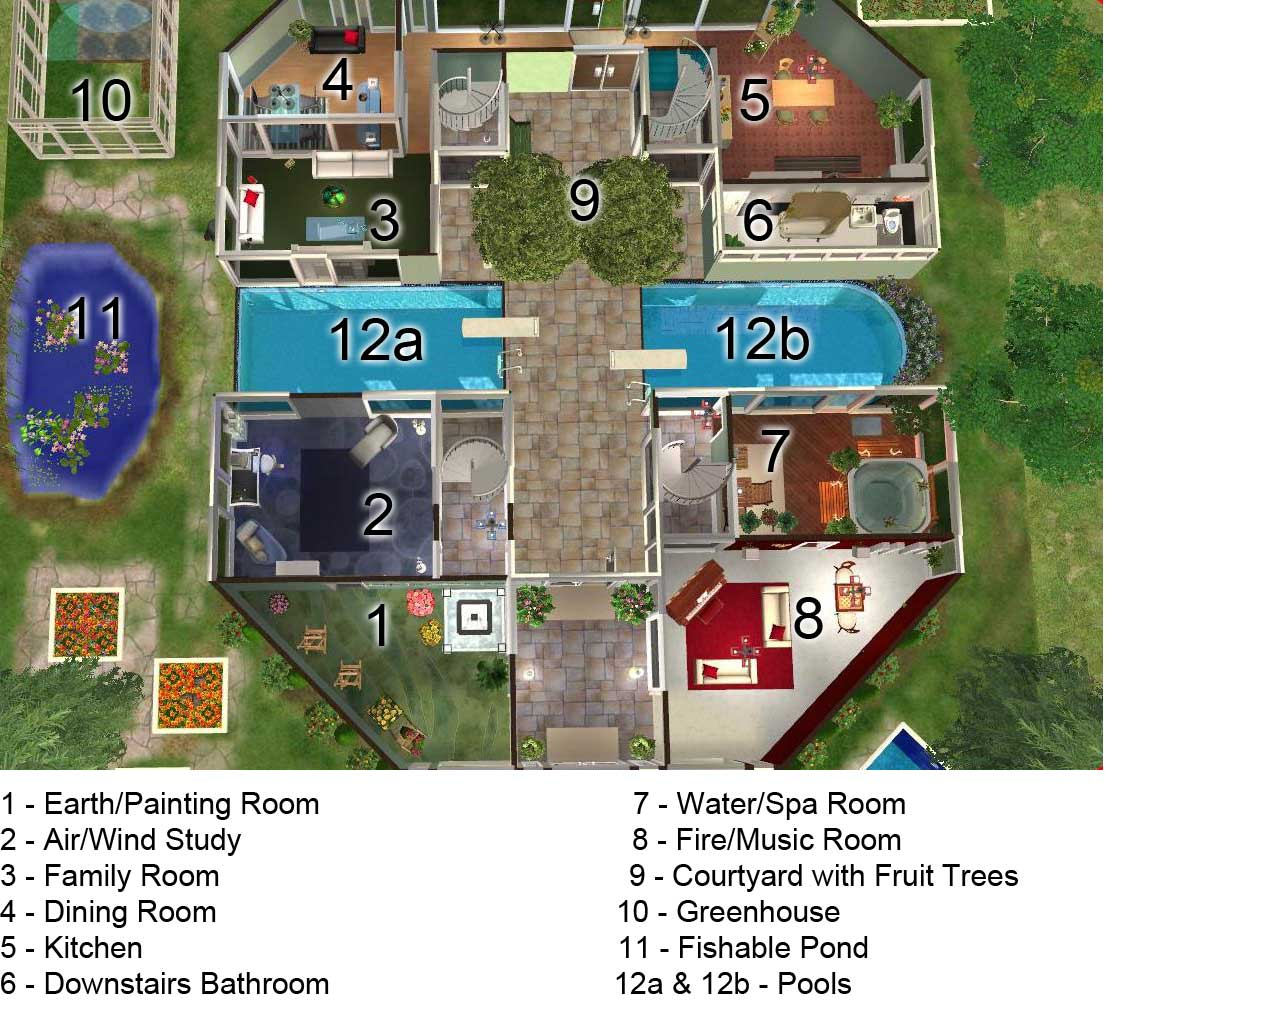 Sims 3 mansion floor plans the image for Mansion floor plans sims 4